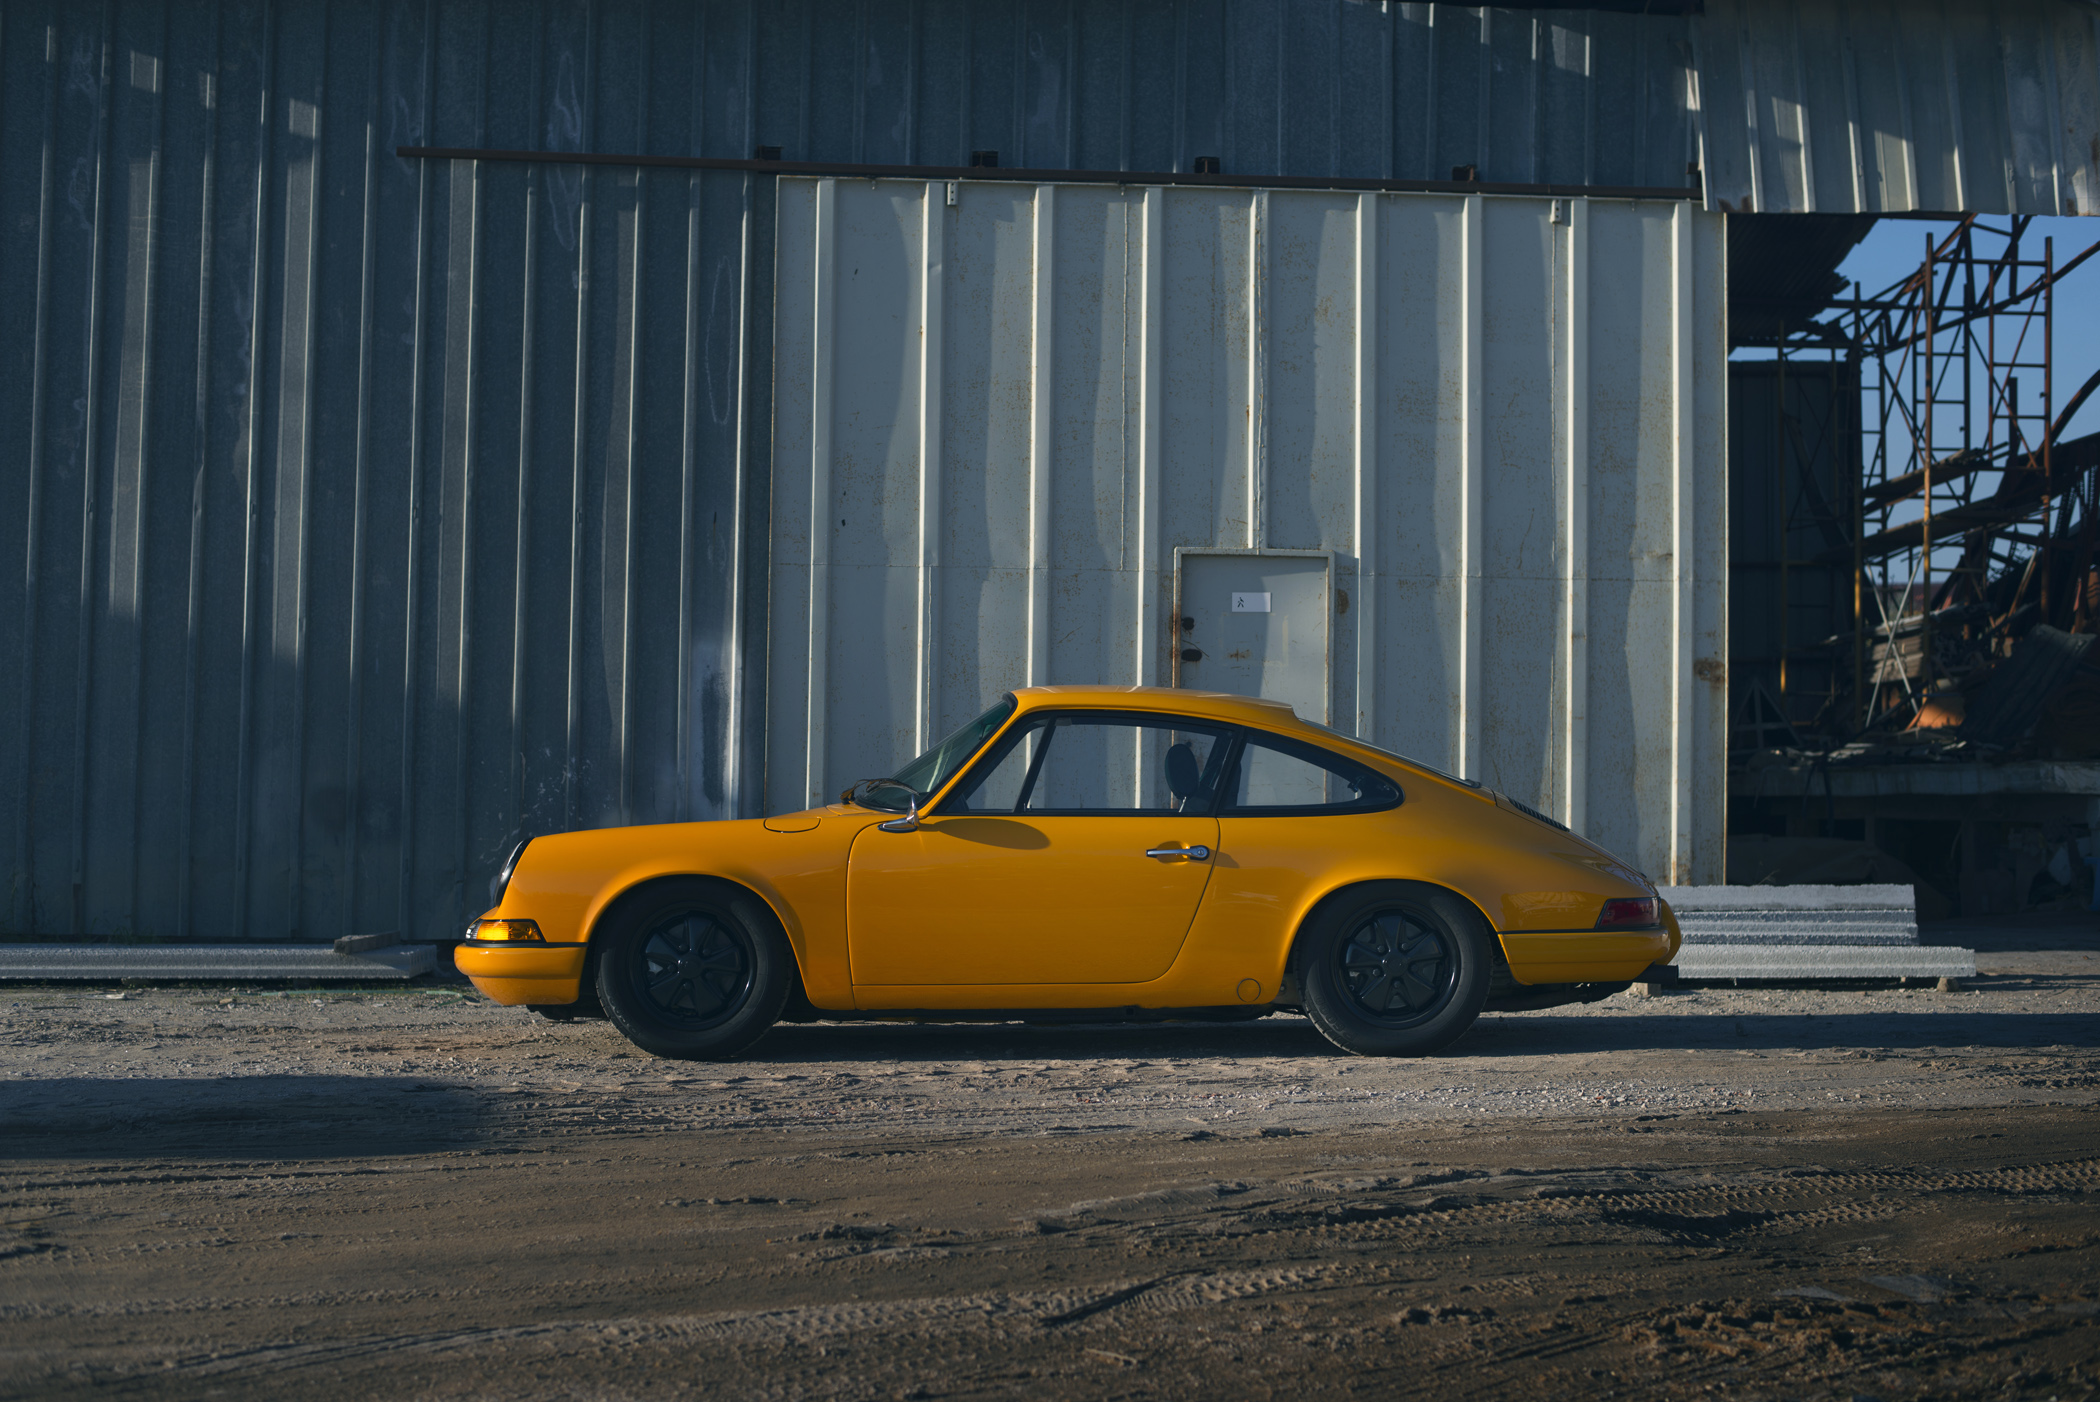 prsphoto_porsche_911t_yellow_05122018_9.jpg